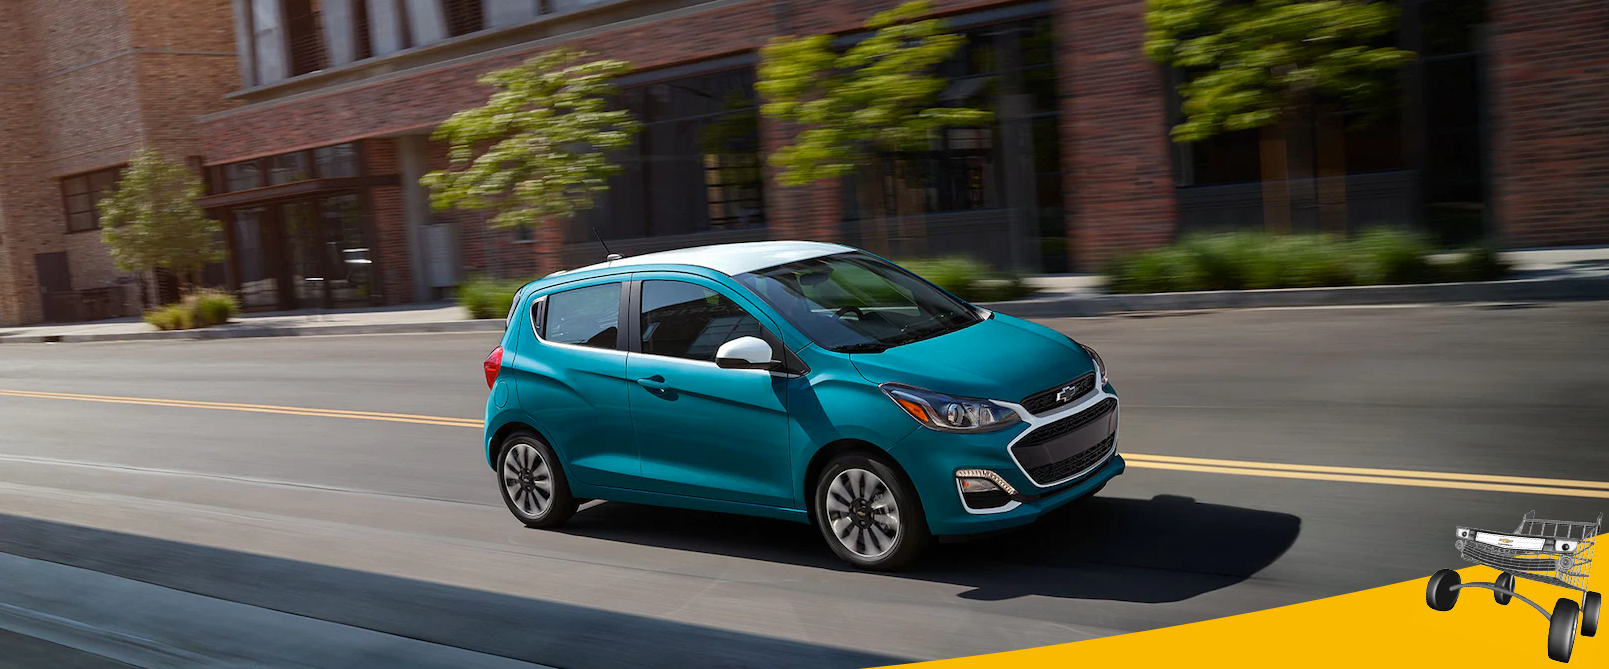 2021 Chevy Spark Chicago IL